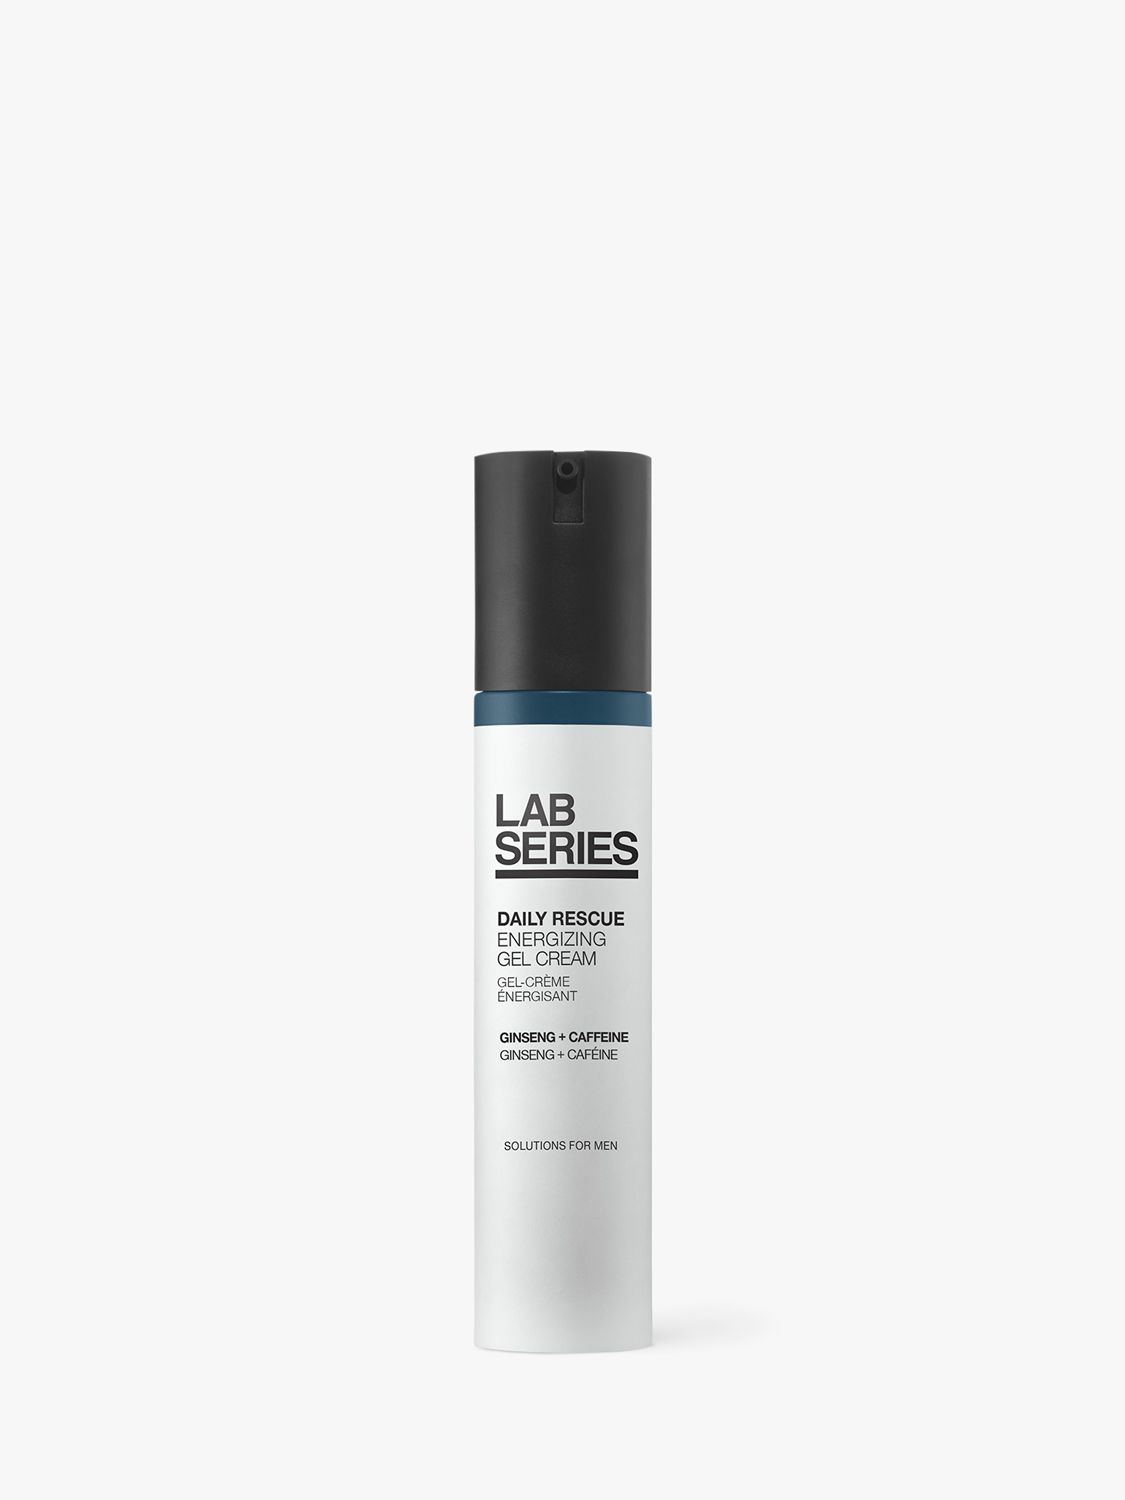 Lab Series Lab Series Age Rescue Water Charged Gel Cream